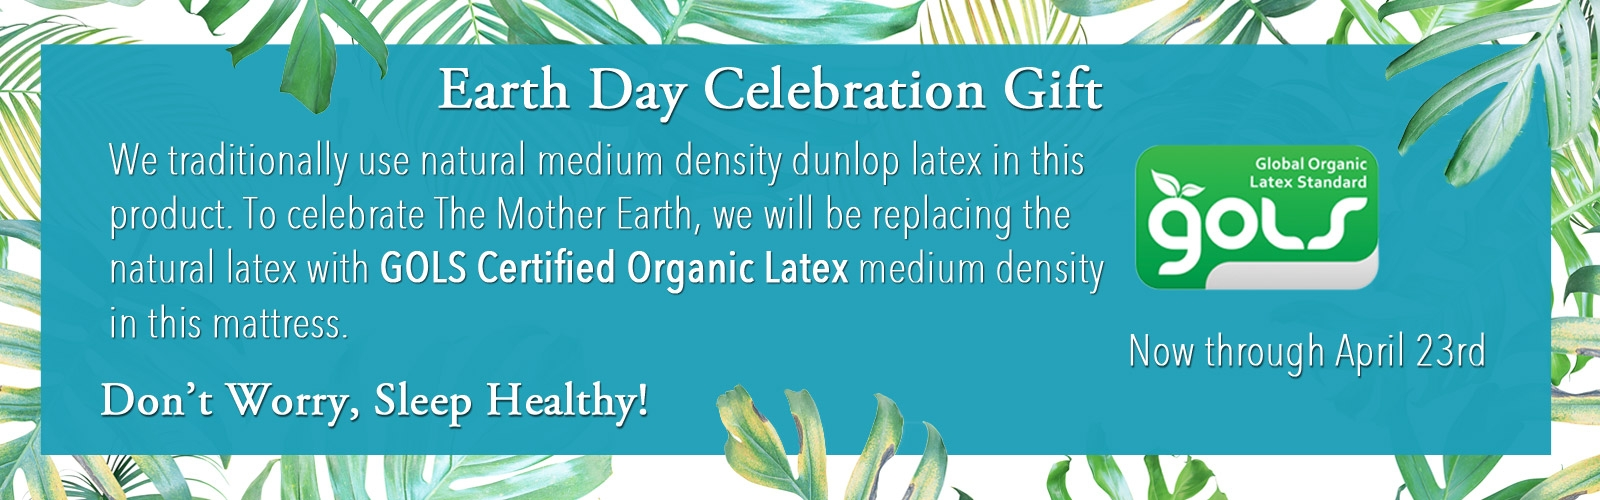 Earth Day Gift GOLD Certified Organic Latex